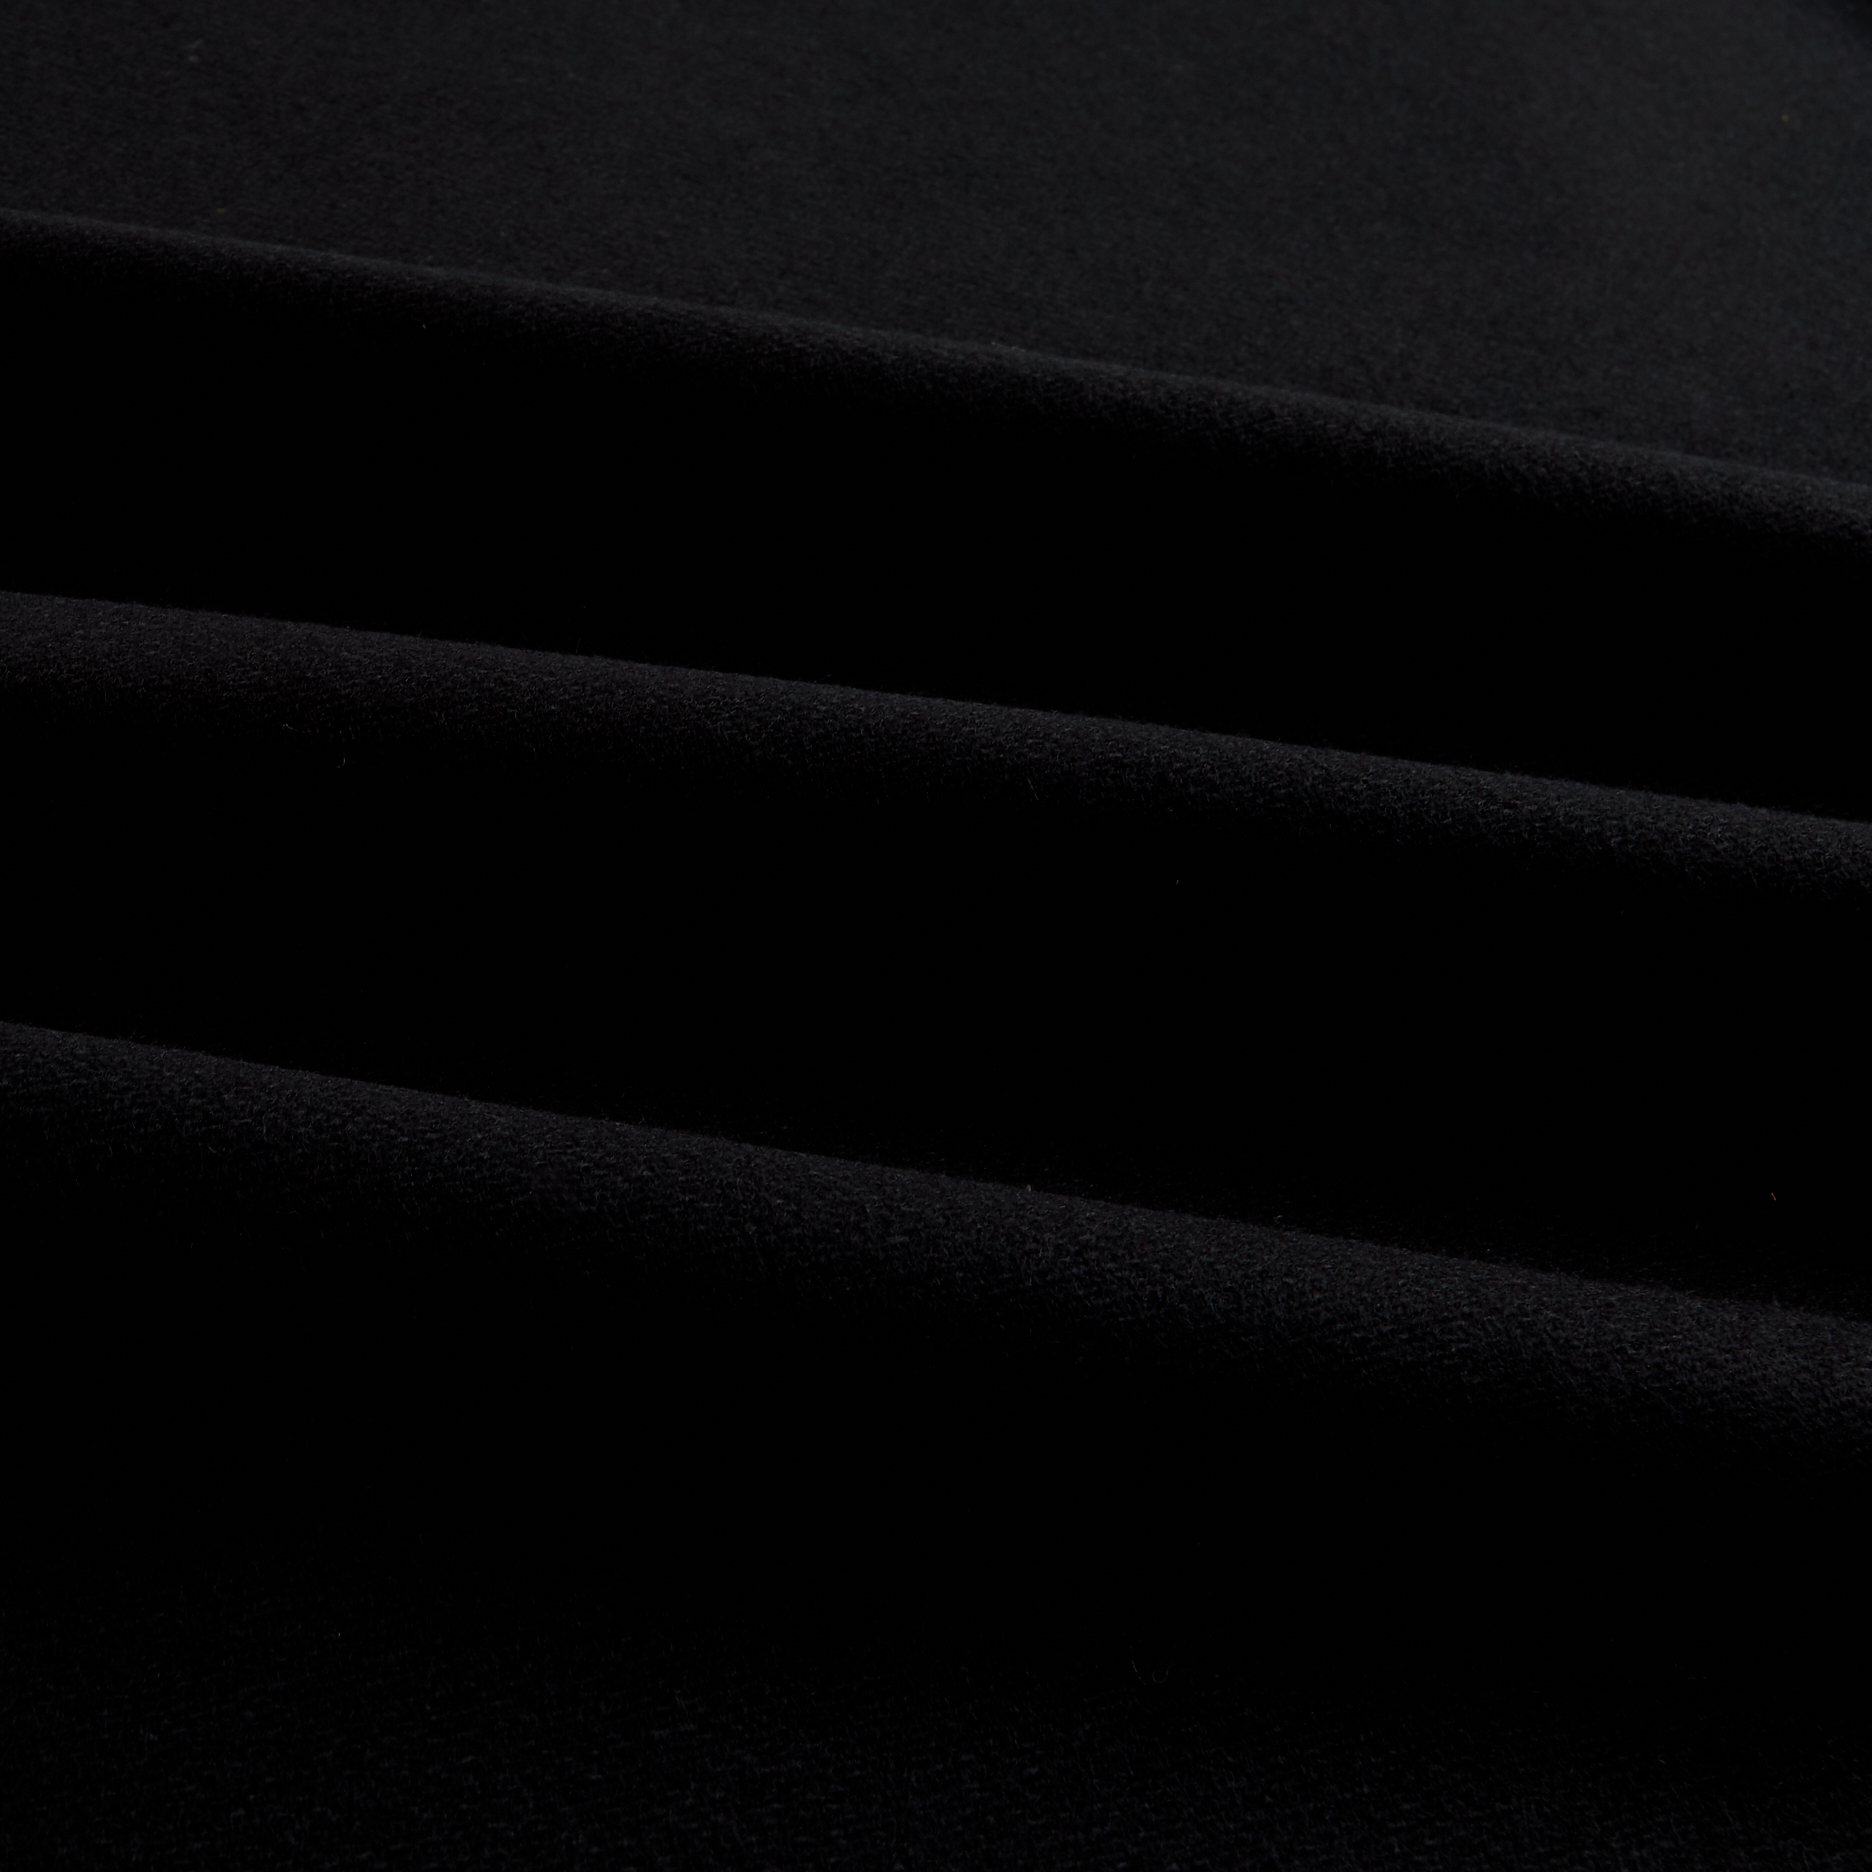 Wool Flannel Solid Black Fabric by Spechler-Vogel in USA